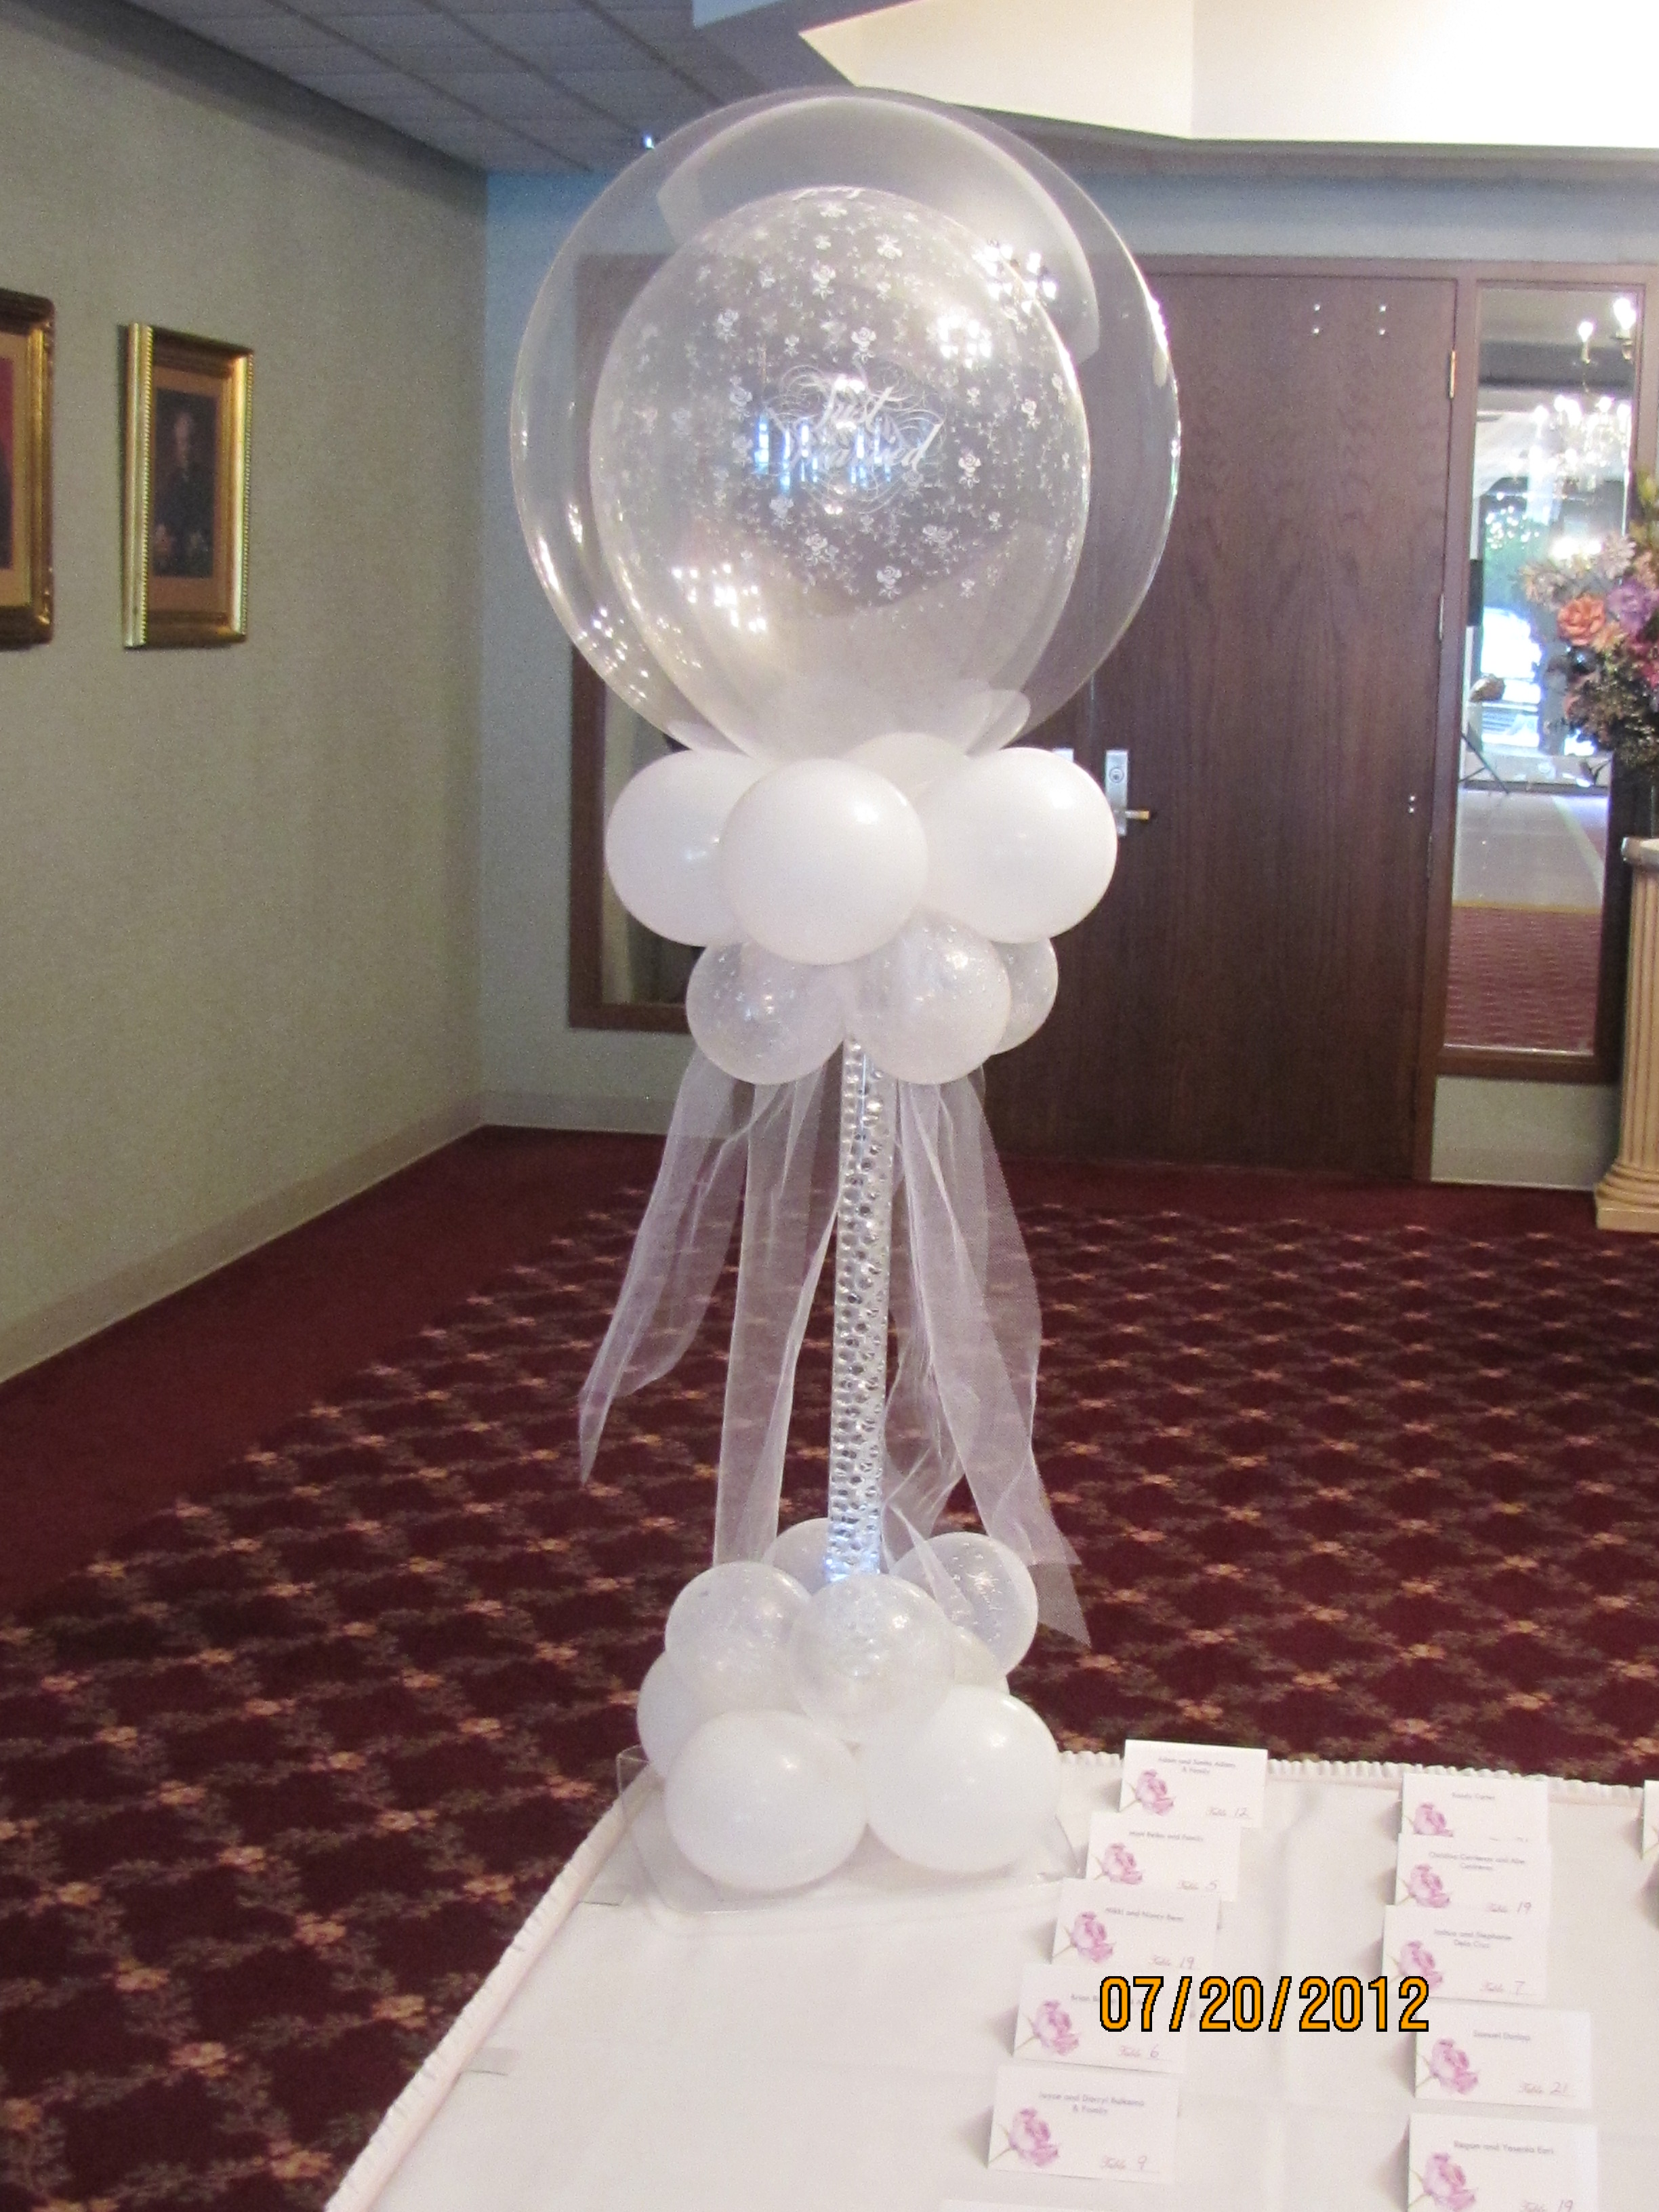 Wedding balloons amytheballoonlady for Ballon wedding decoration